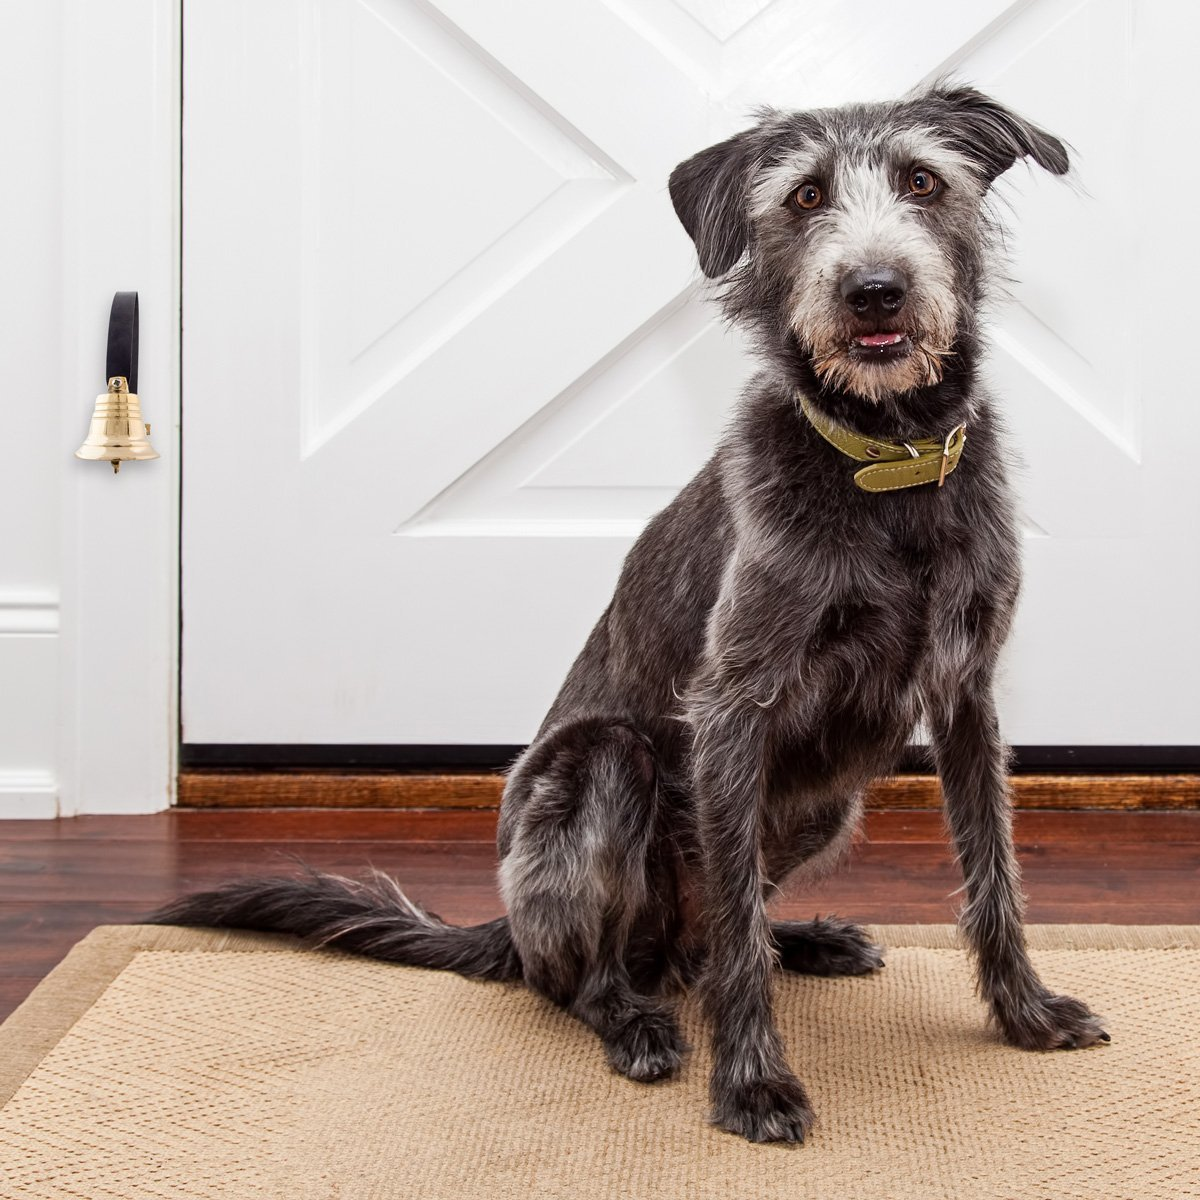 Dog Doorbell - GoGo Bell Deluxe with Solid Brass Bell For Loud Clear Tone by Dog Doorbell (Image #3)